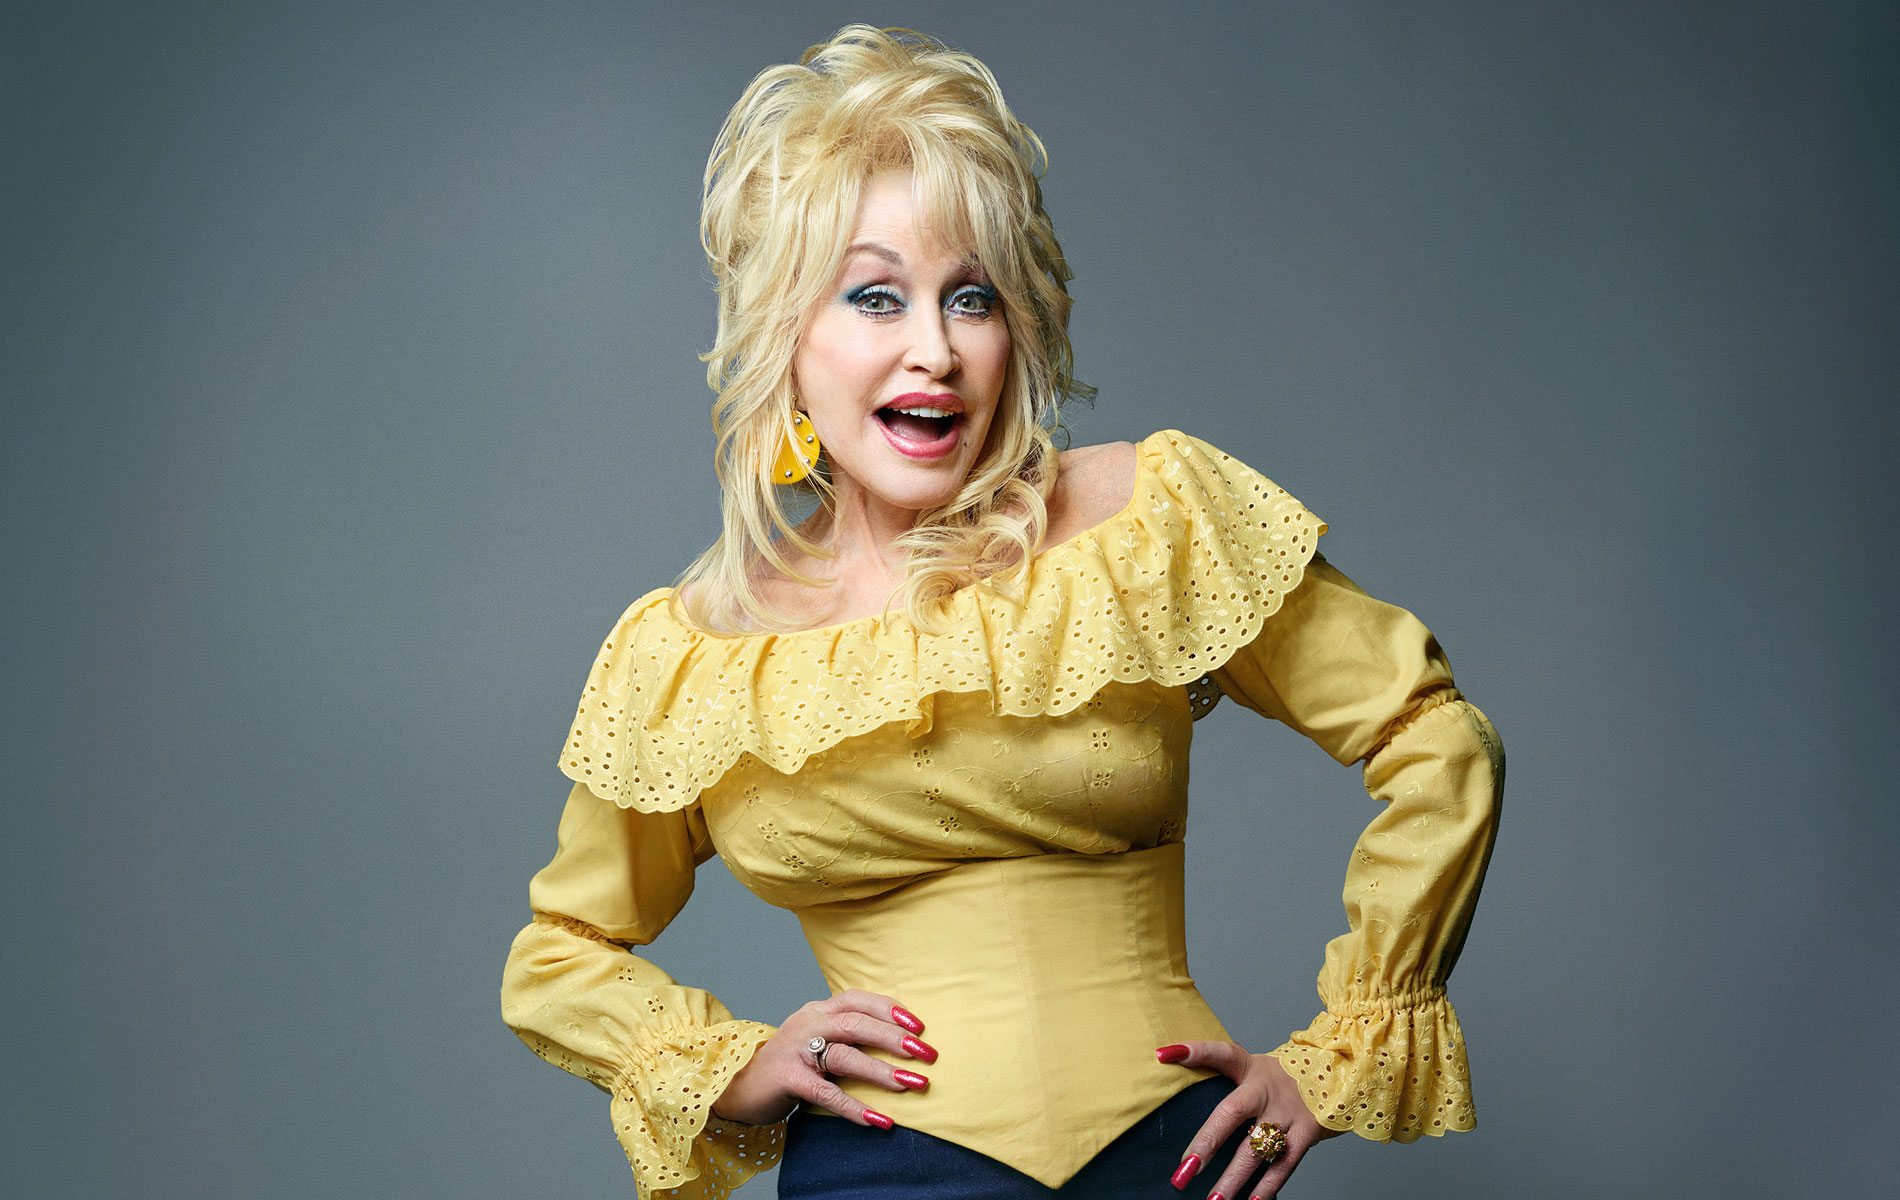 Dolly Parton Net Worth And How She Made A Fortune From Country Music